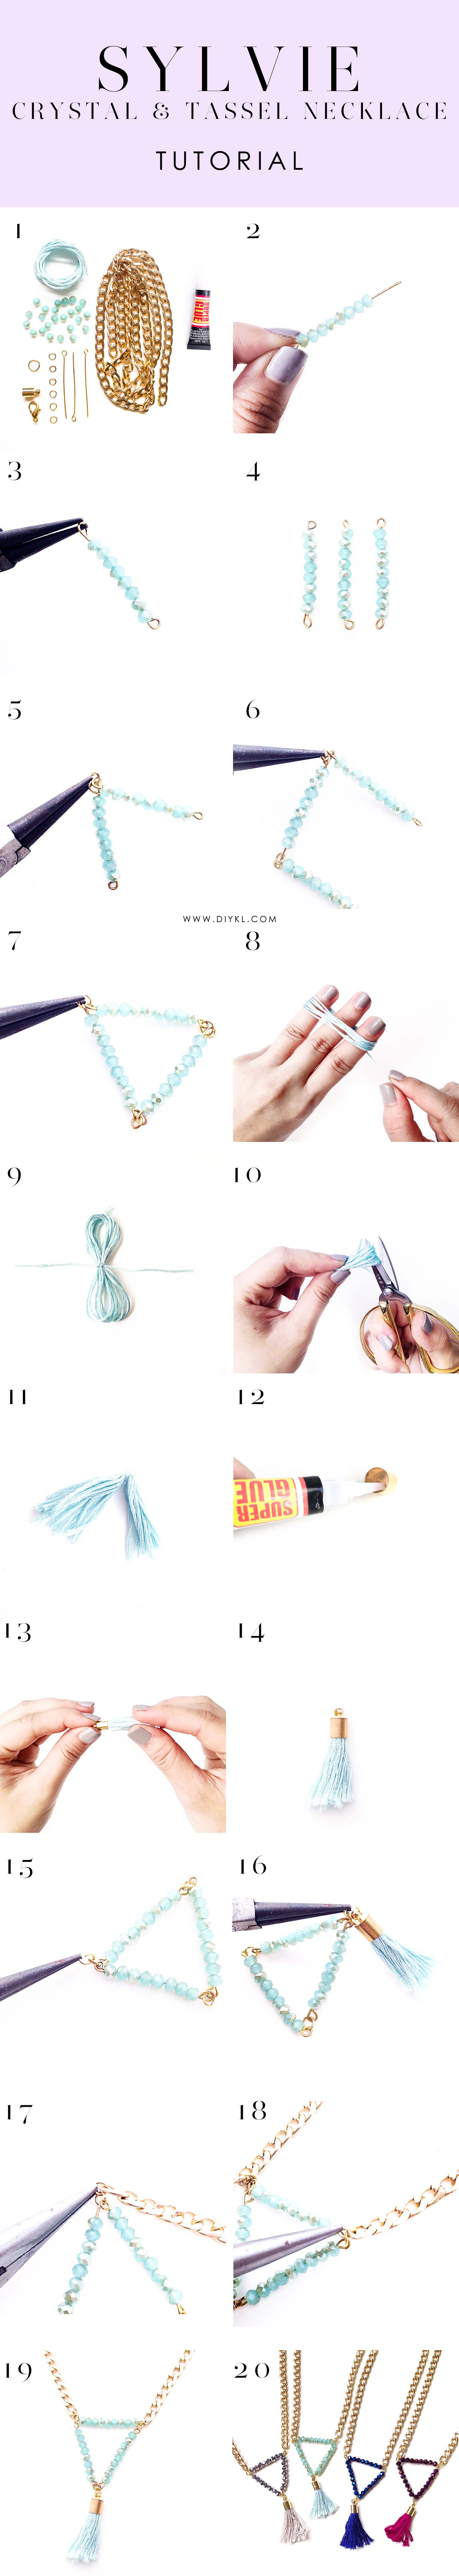 diykl sylvie crystal tassel necklace